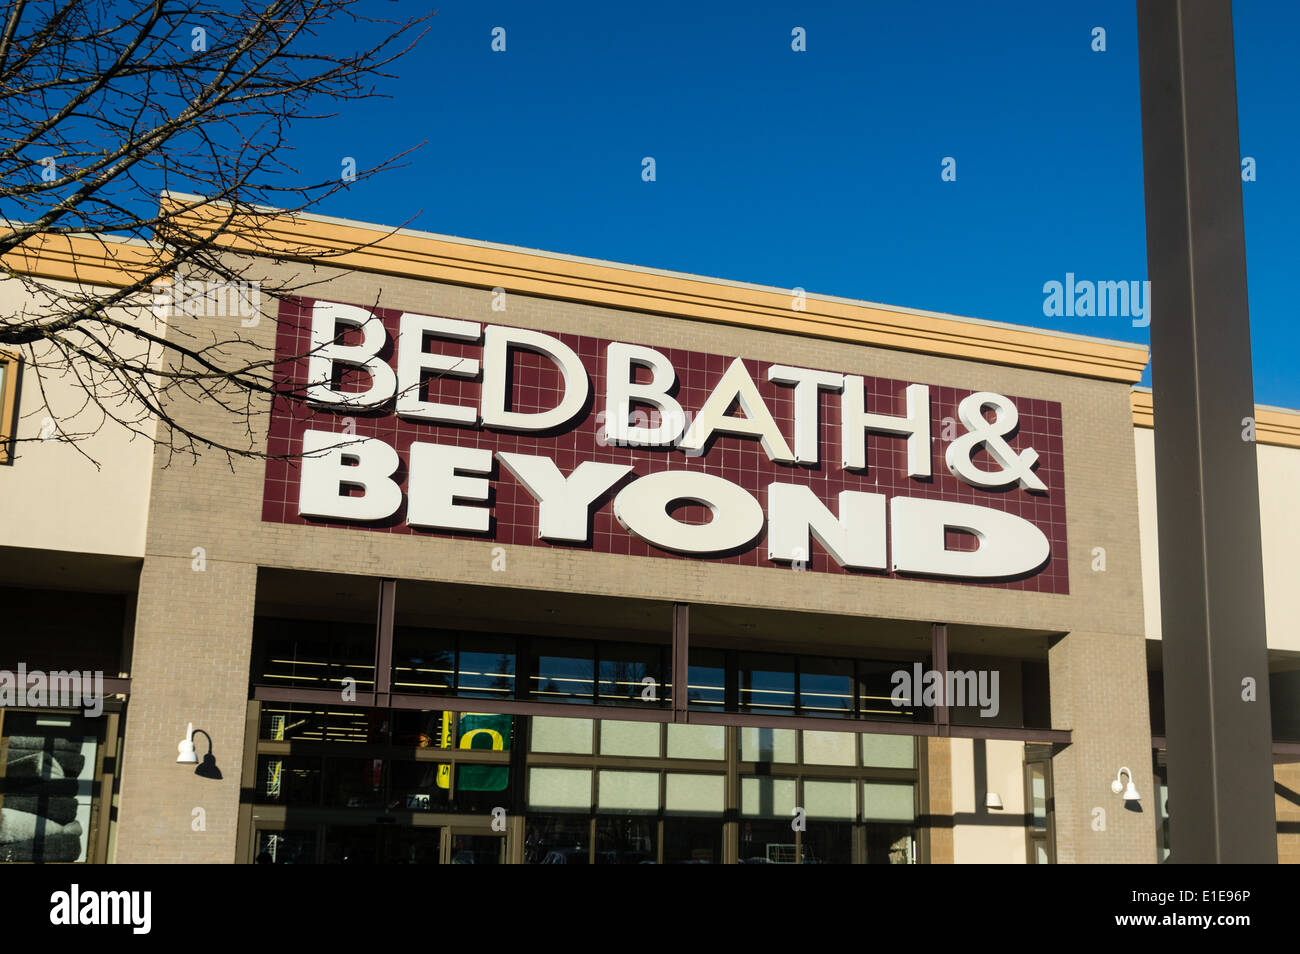 bed bath beyond is a retailer of home decor and appliances stock